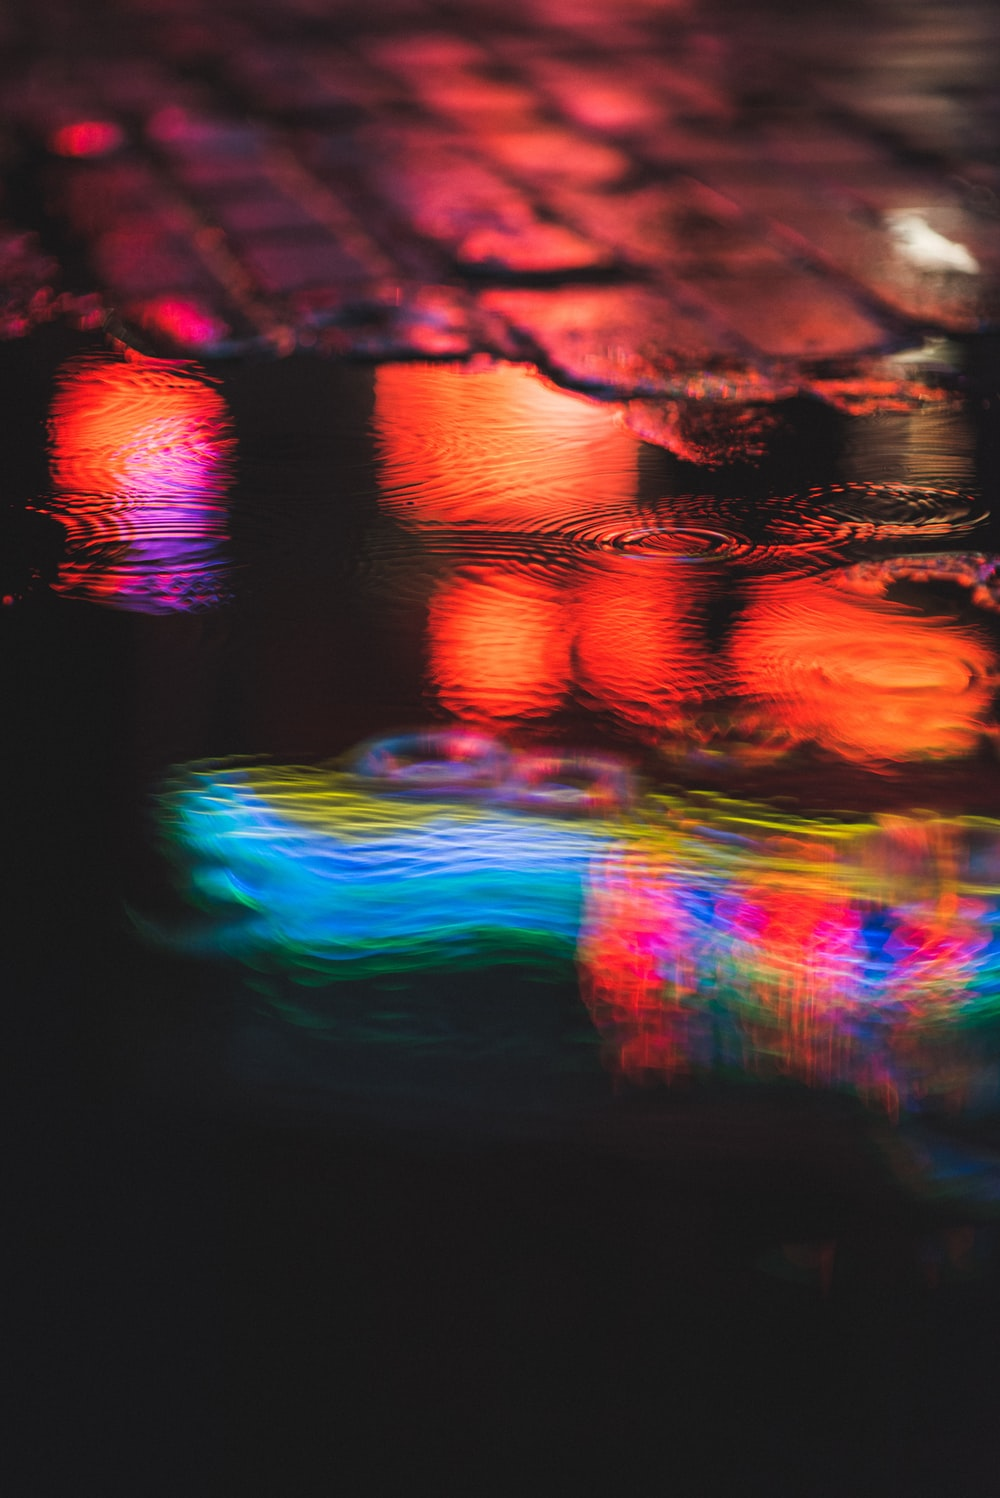 red and blue light reflection on water